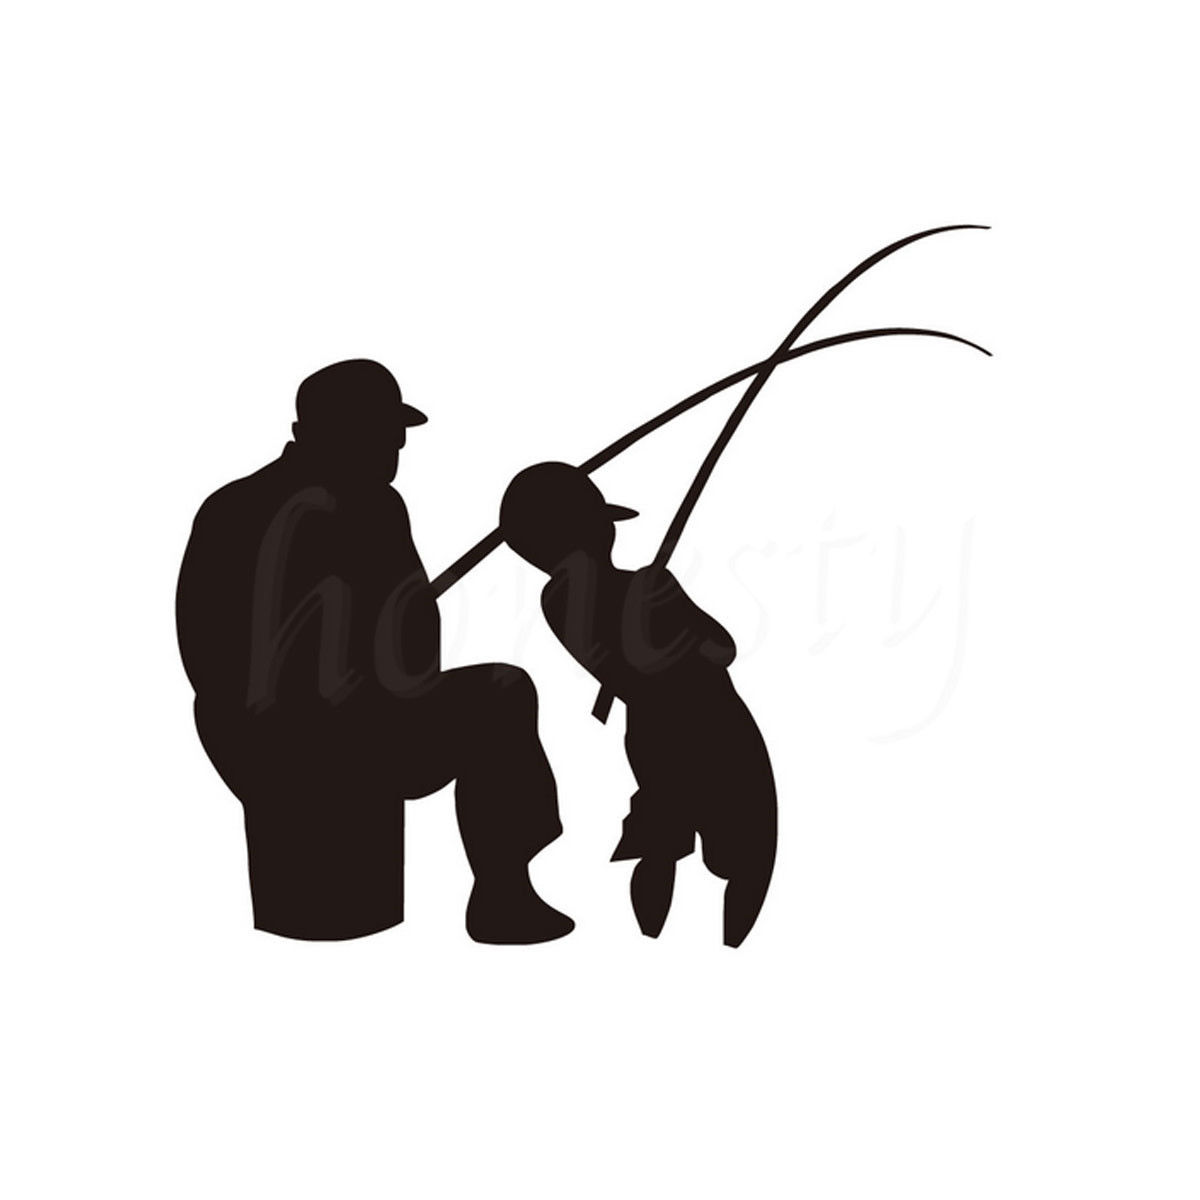 Download We have about ( files) royalty free vectors in ai, eps, cdr, svg vector illustration graphic art design format, river fishing bank clipart. Man and Boy Fishing Car Wall Sticker Home Glass Window 1svg.com